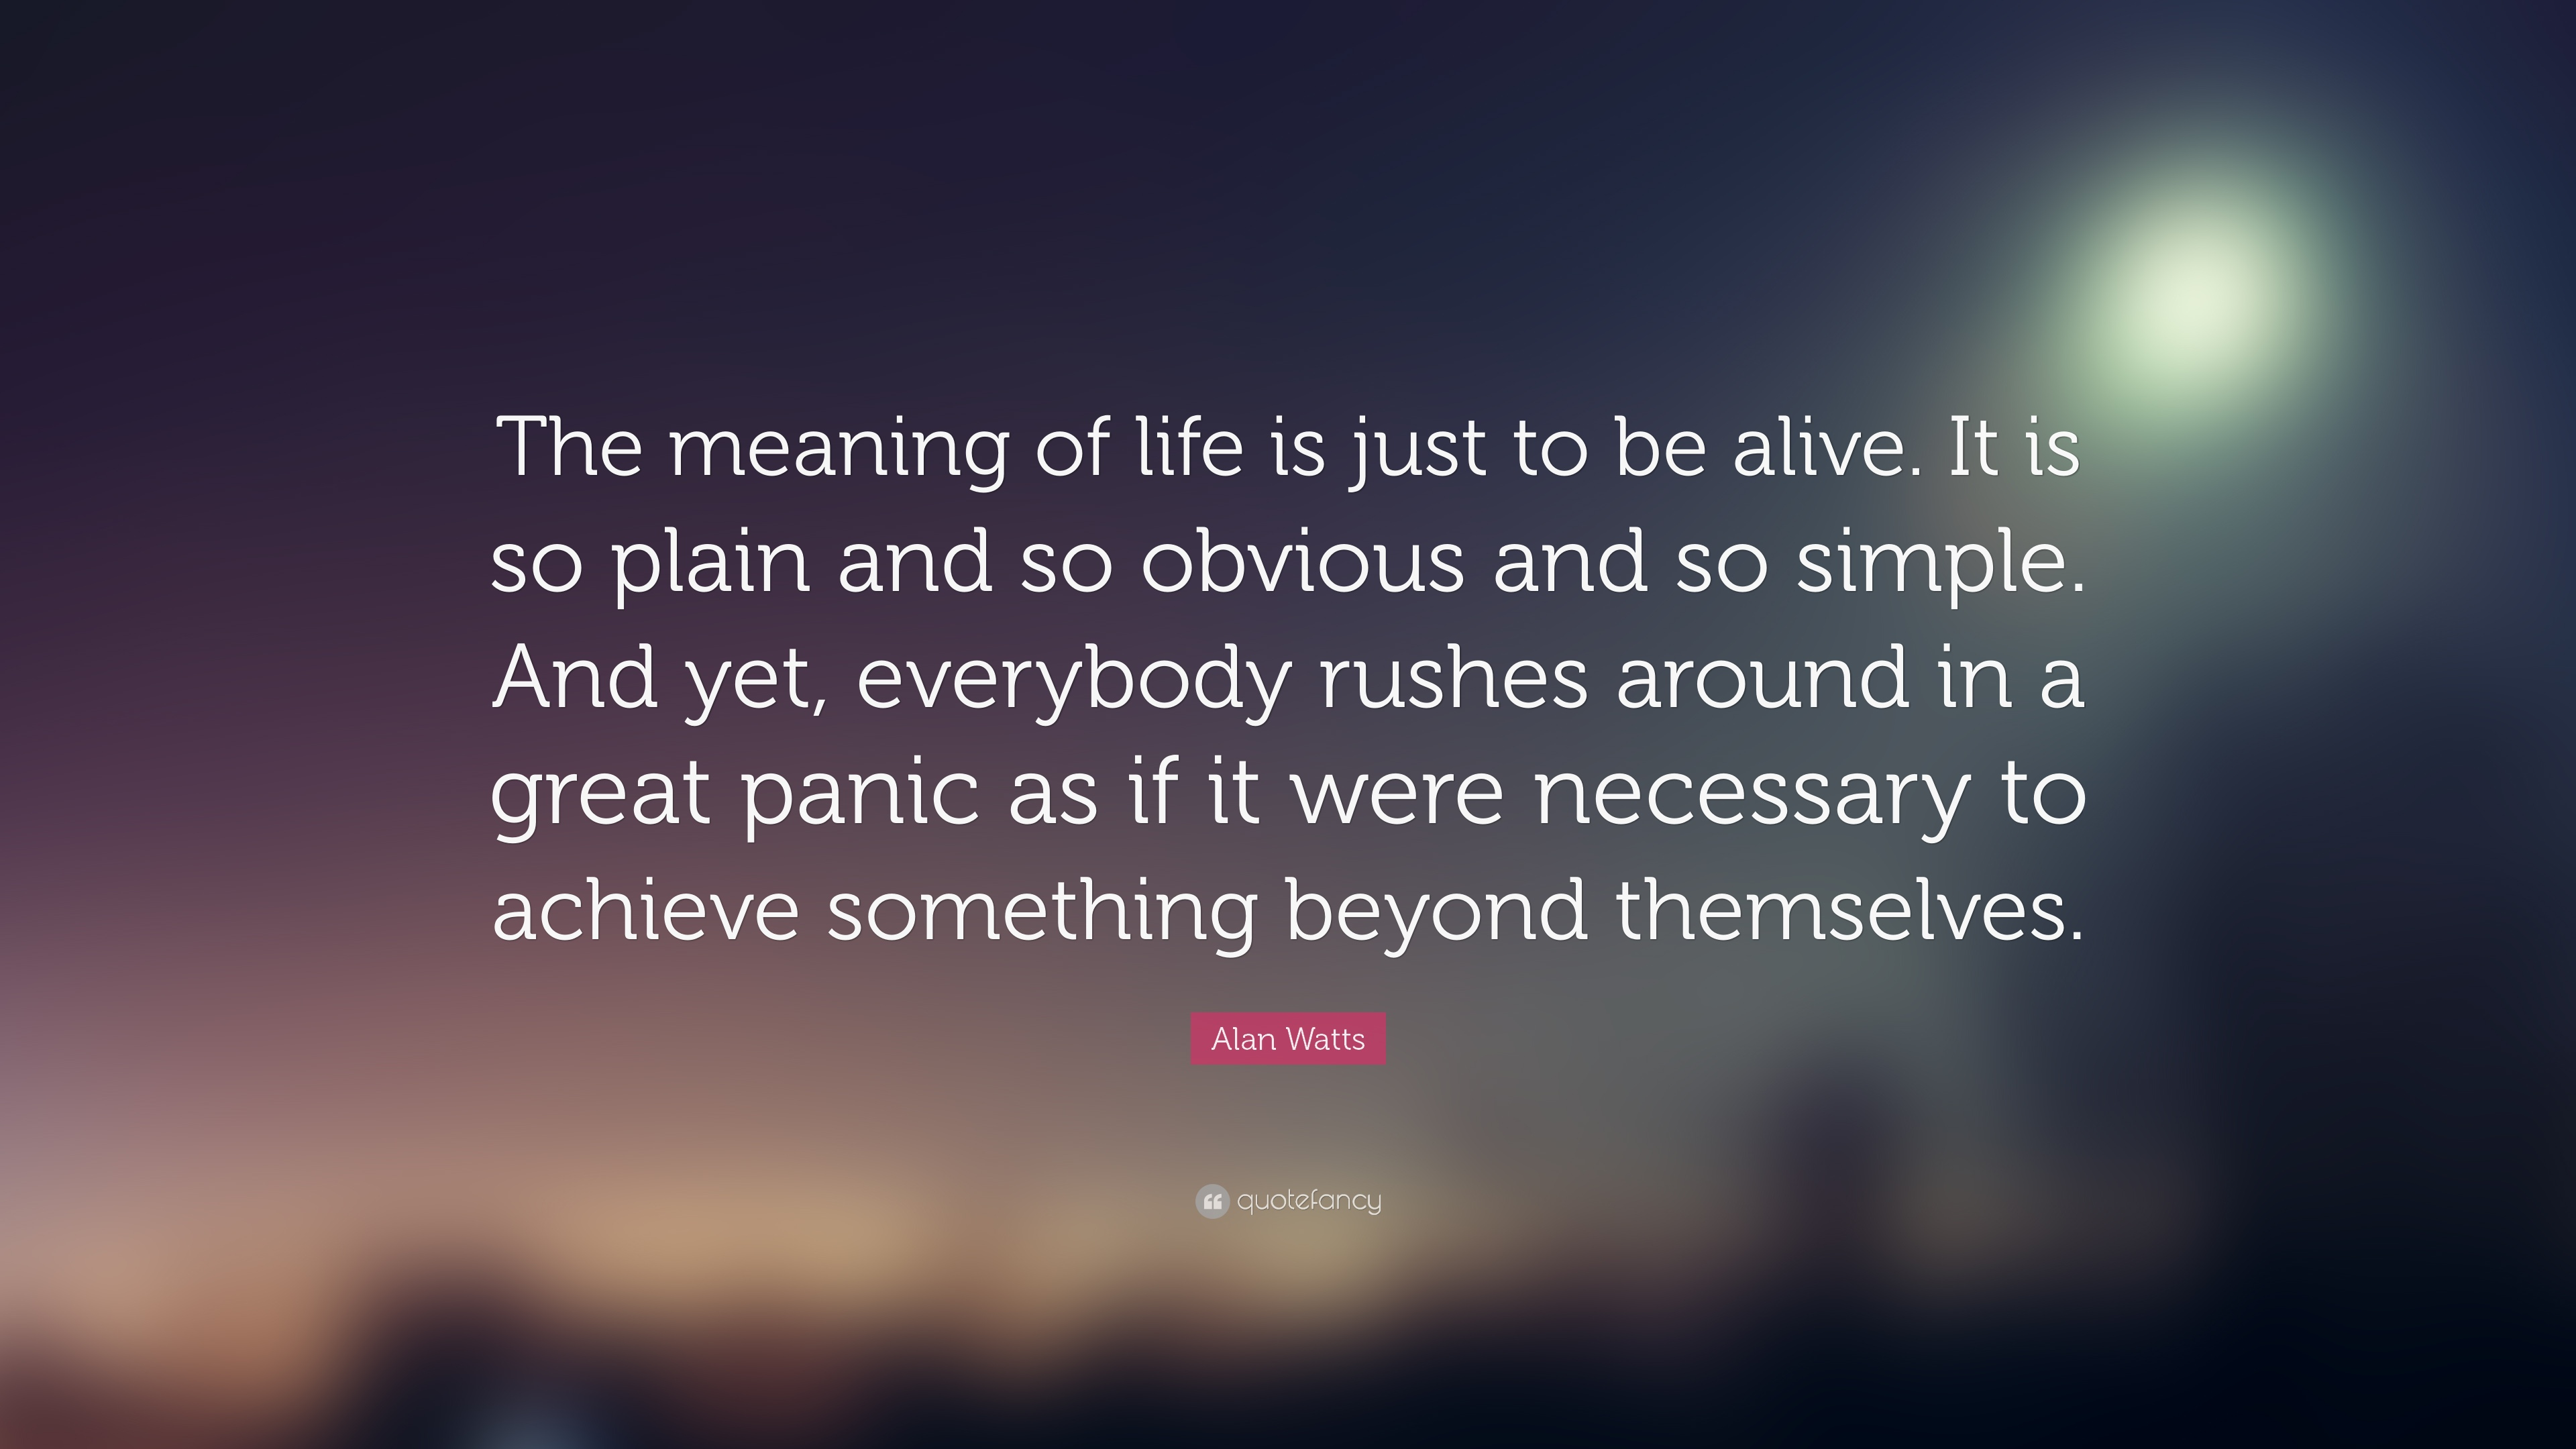 Philosophers Quotes On The Meaning Of Life Alan Watts Quotes 57 Wallpapers  Quotefancy